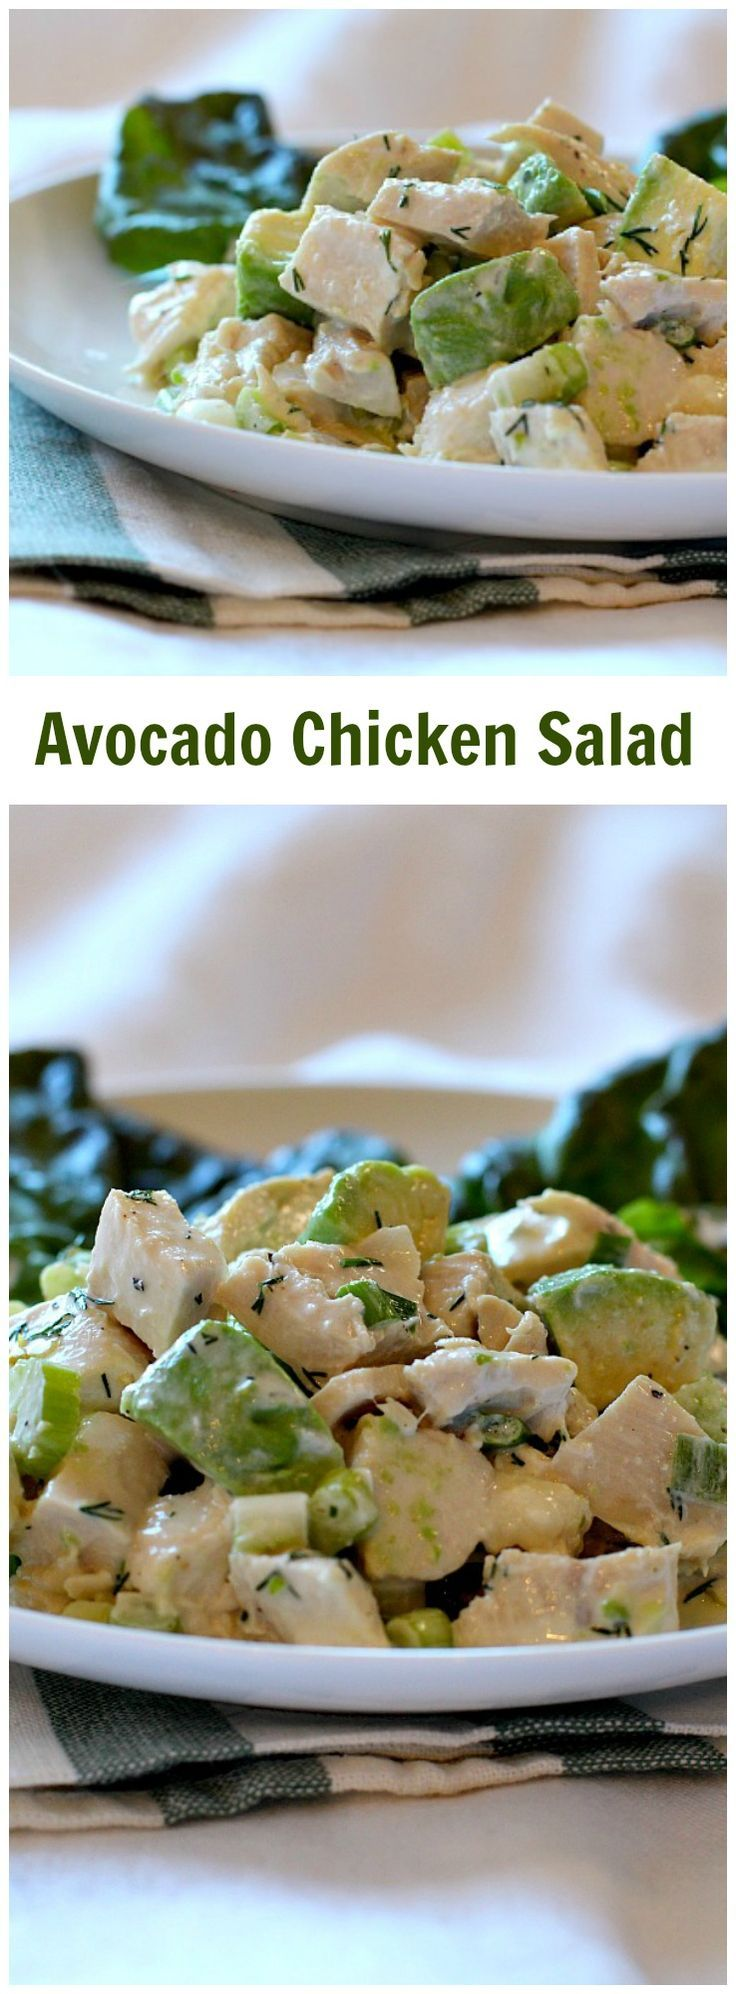 A thick creamy dressing made with mayo and avocado makes this a unique and crazy good Chicken Salad Recipe. Crunchy with celery and with just enough rice vinegar for excitement. #SundaySupper